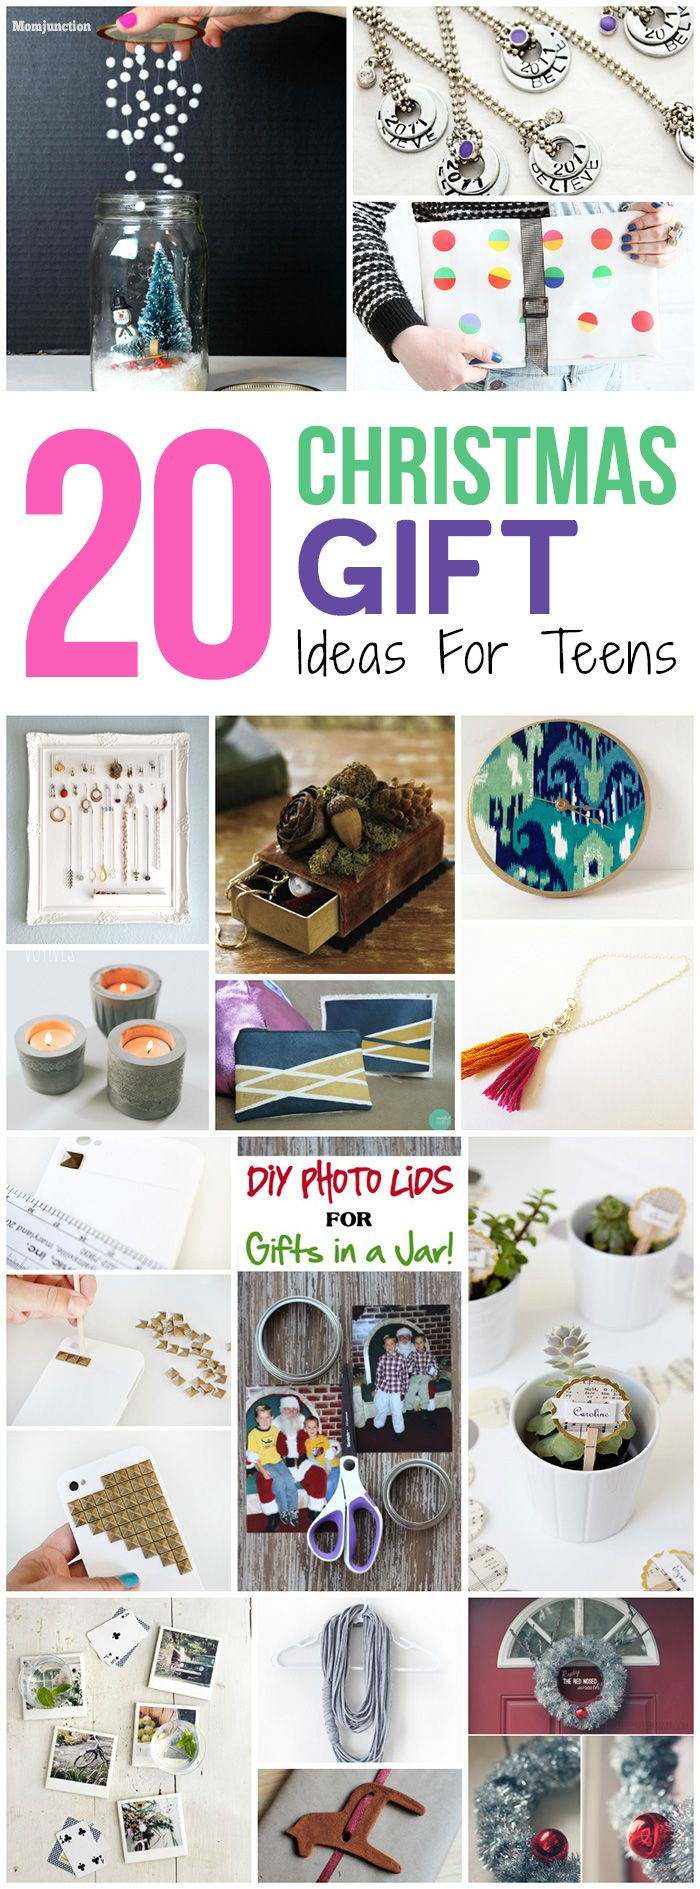 Top 20 Christmas Gifts Ideas For Teens | Gift ideas | Pinterest